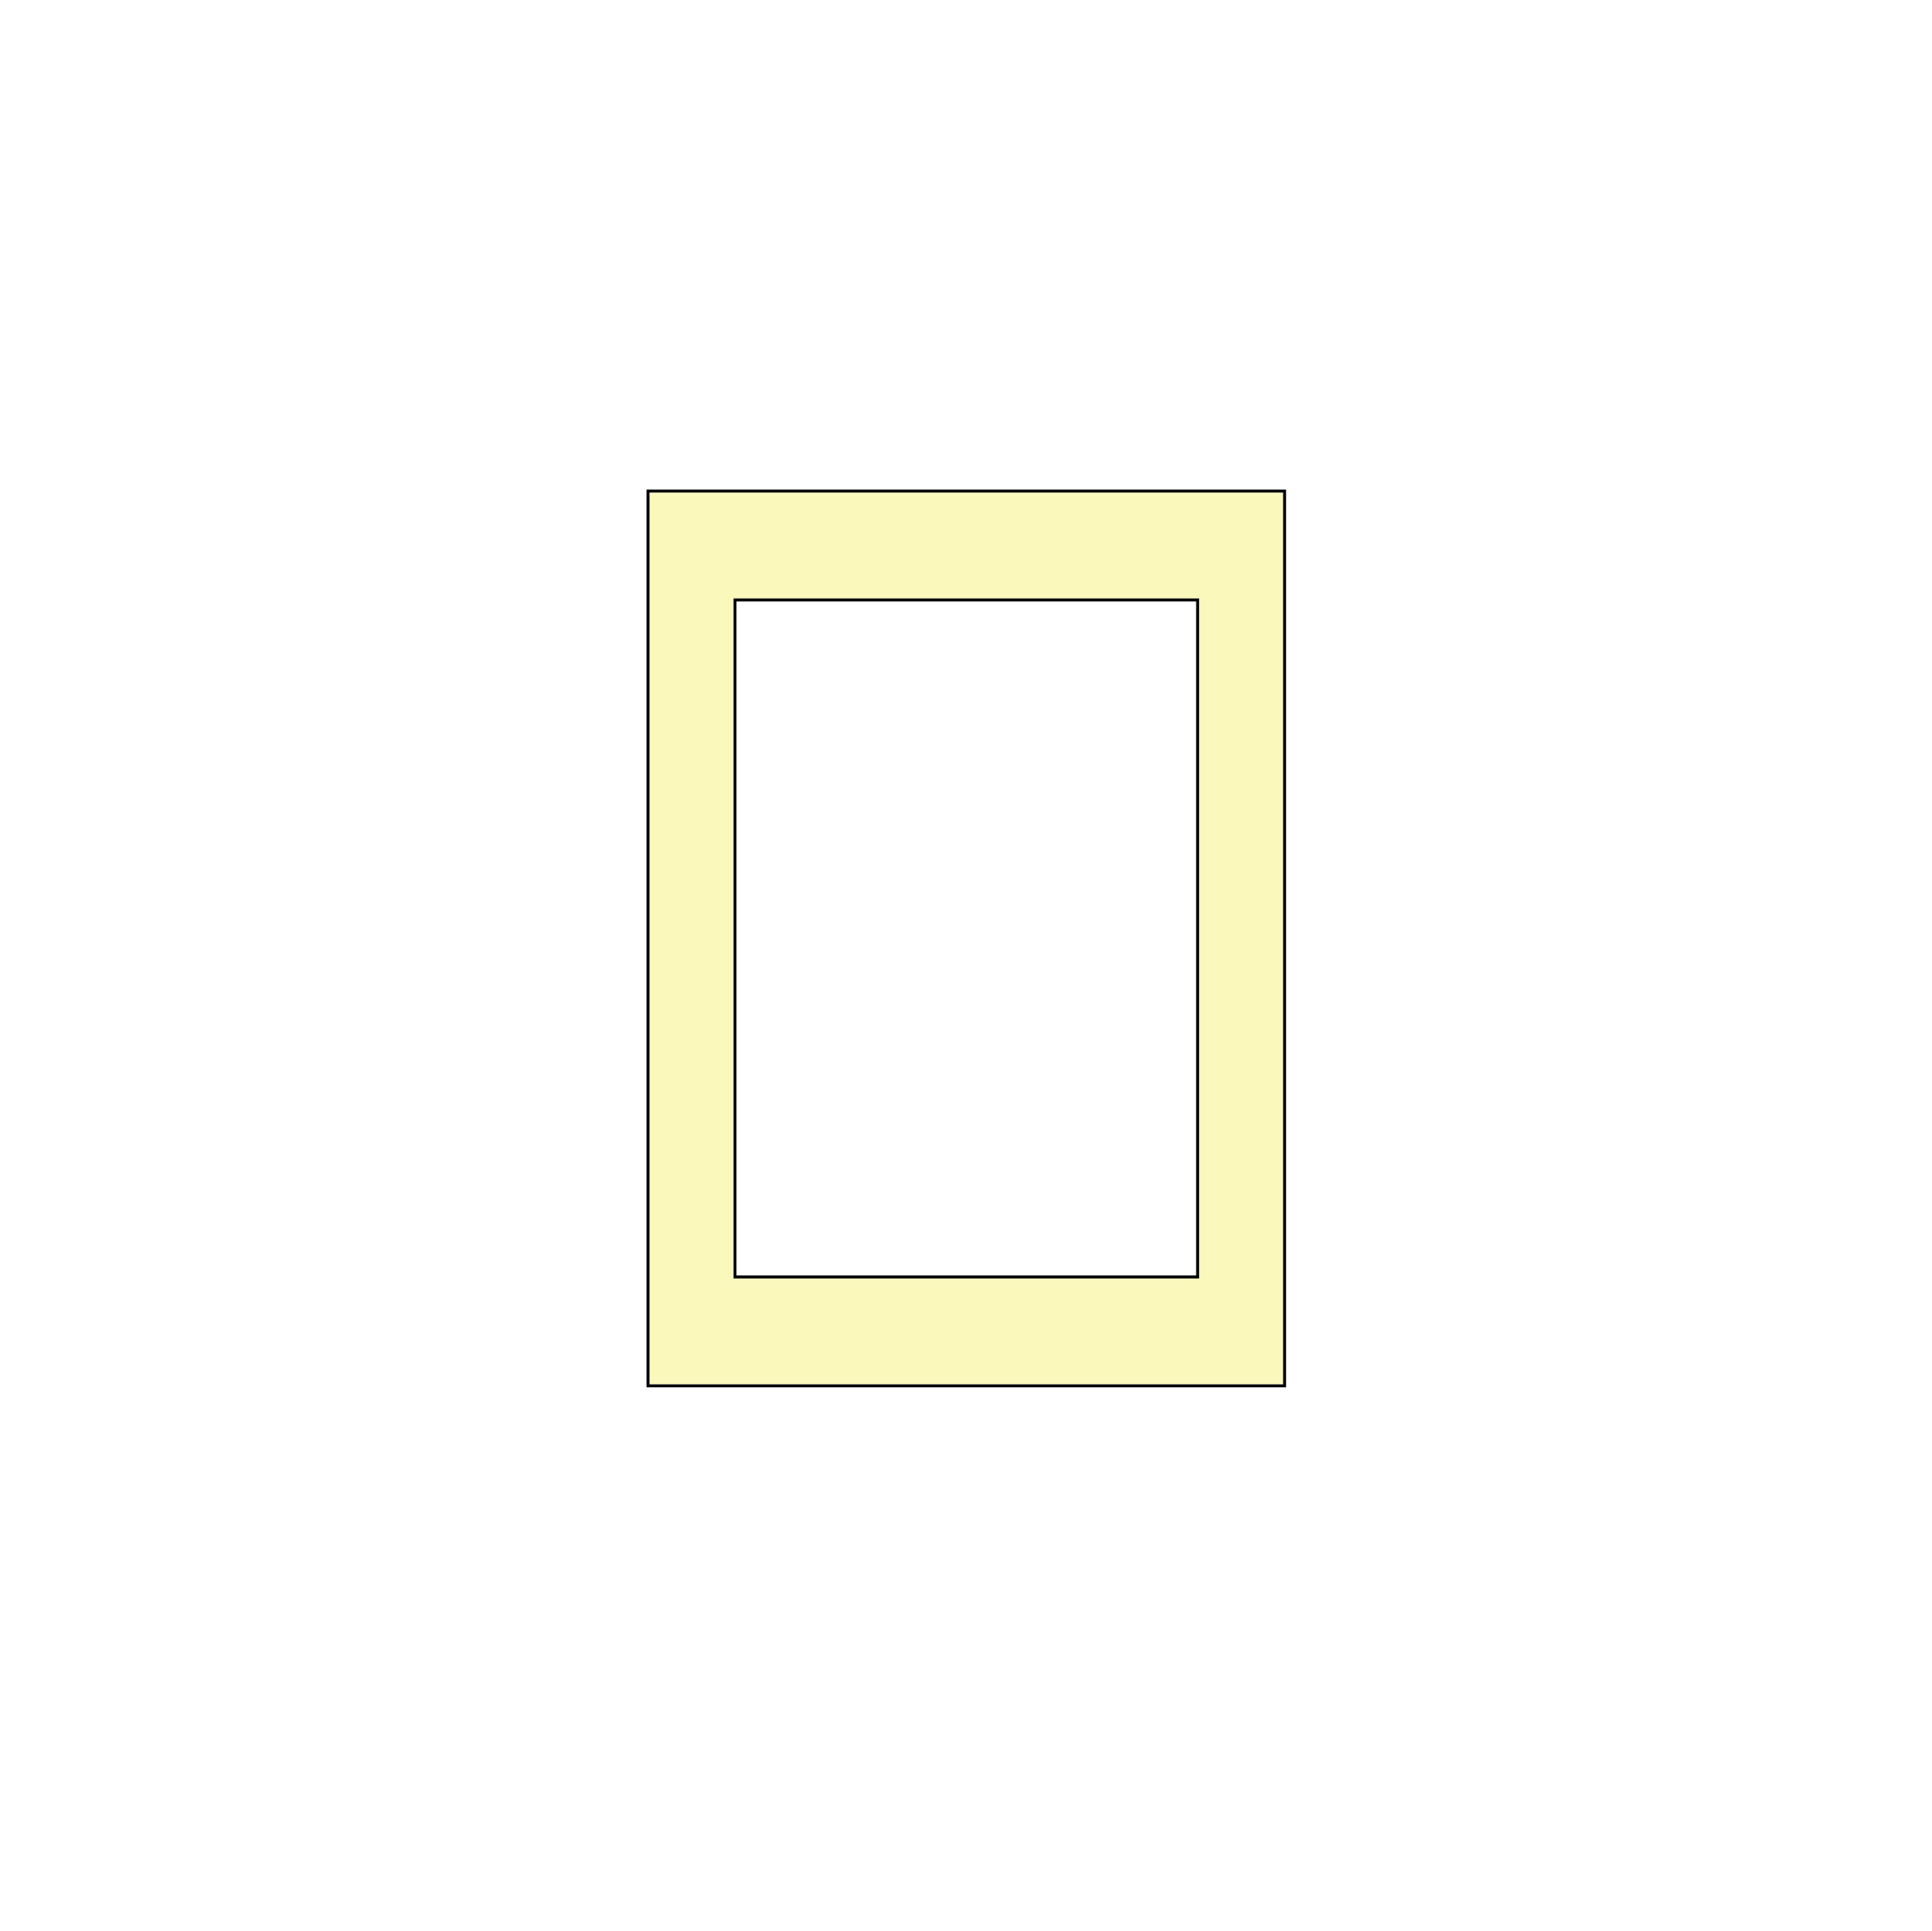 Light Switch Marker Image